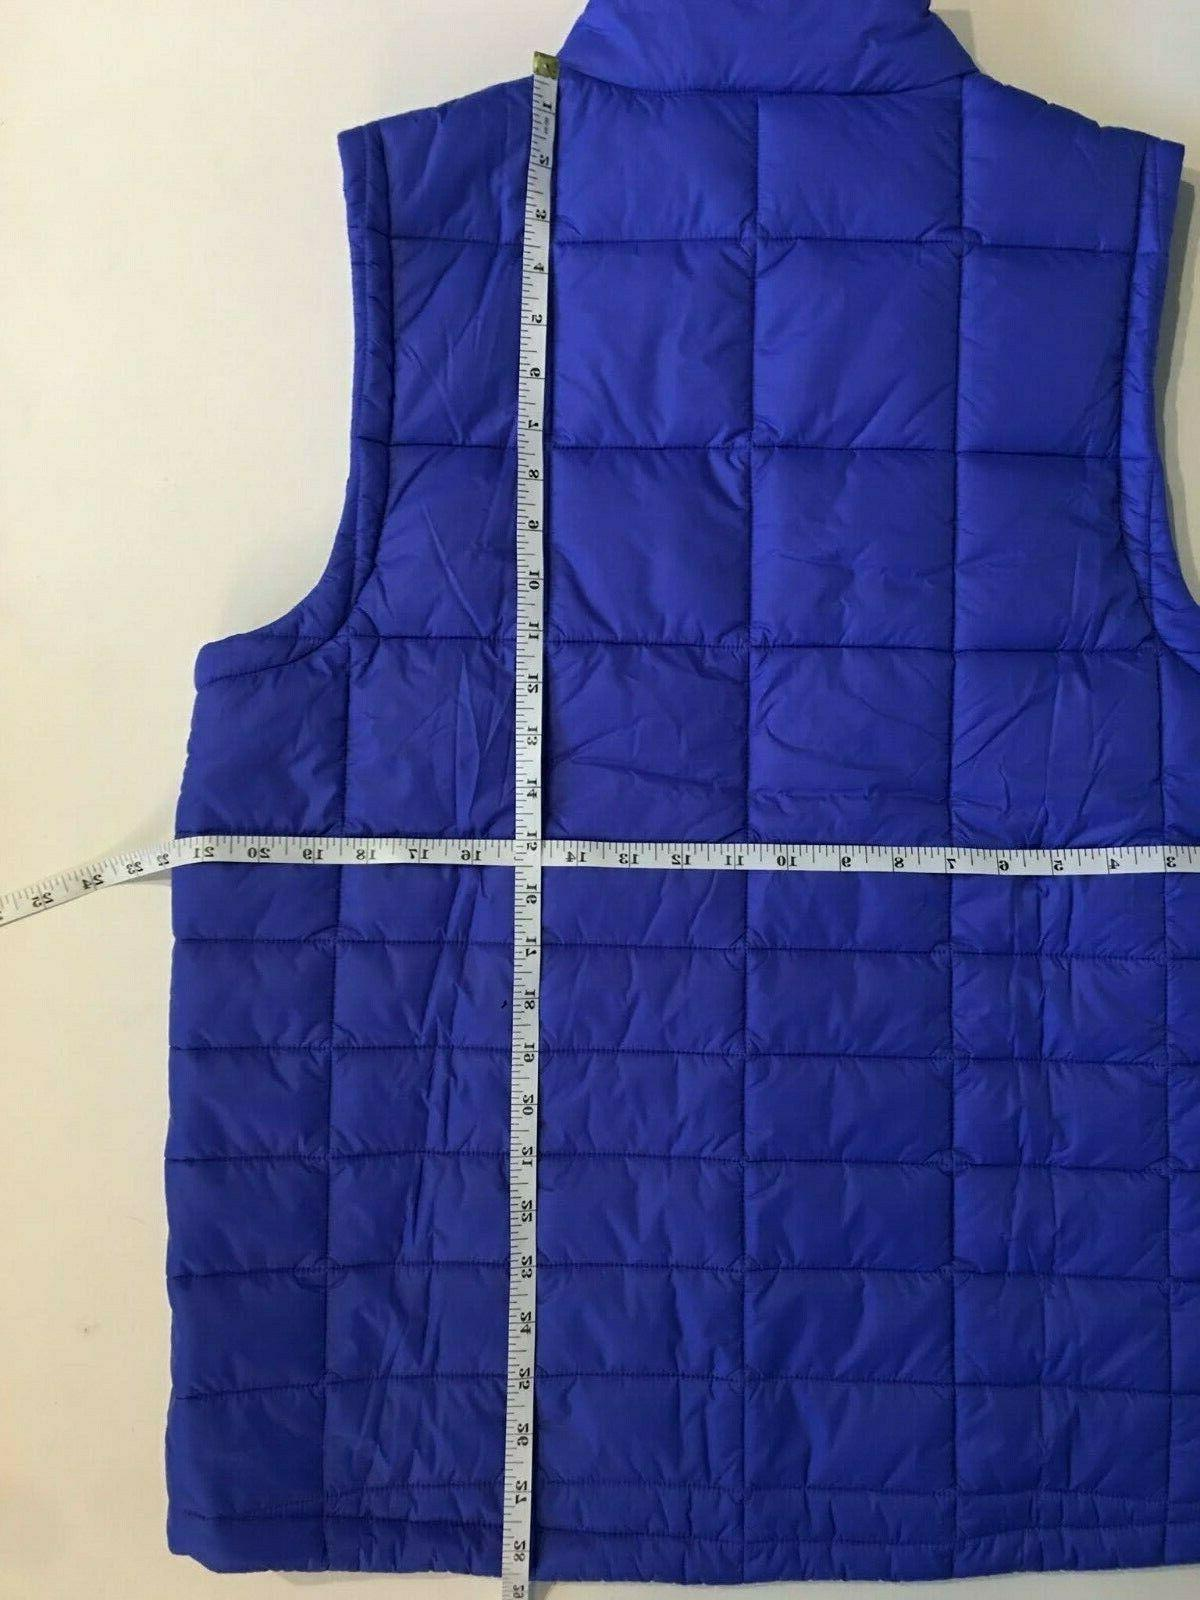 Under Armour Insulated Vest 1360551 $90